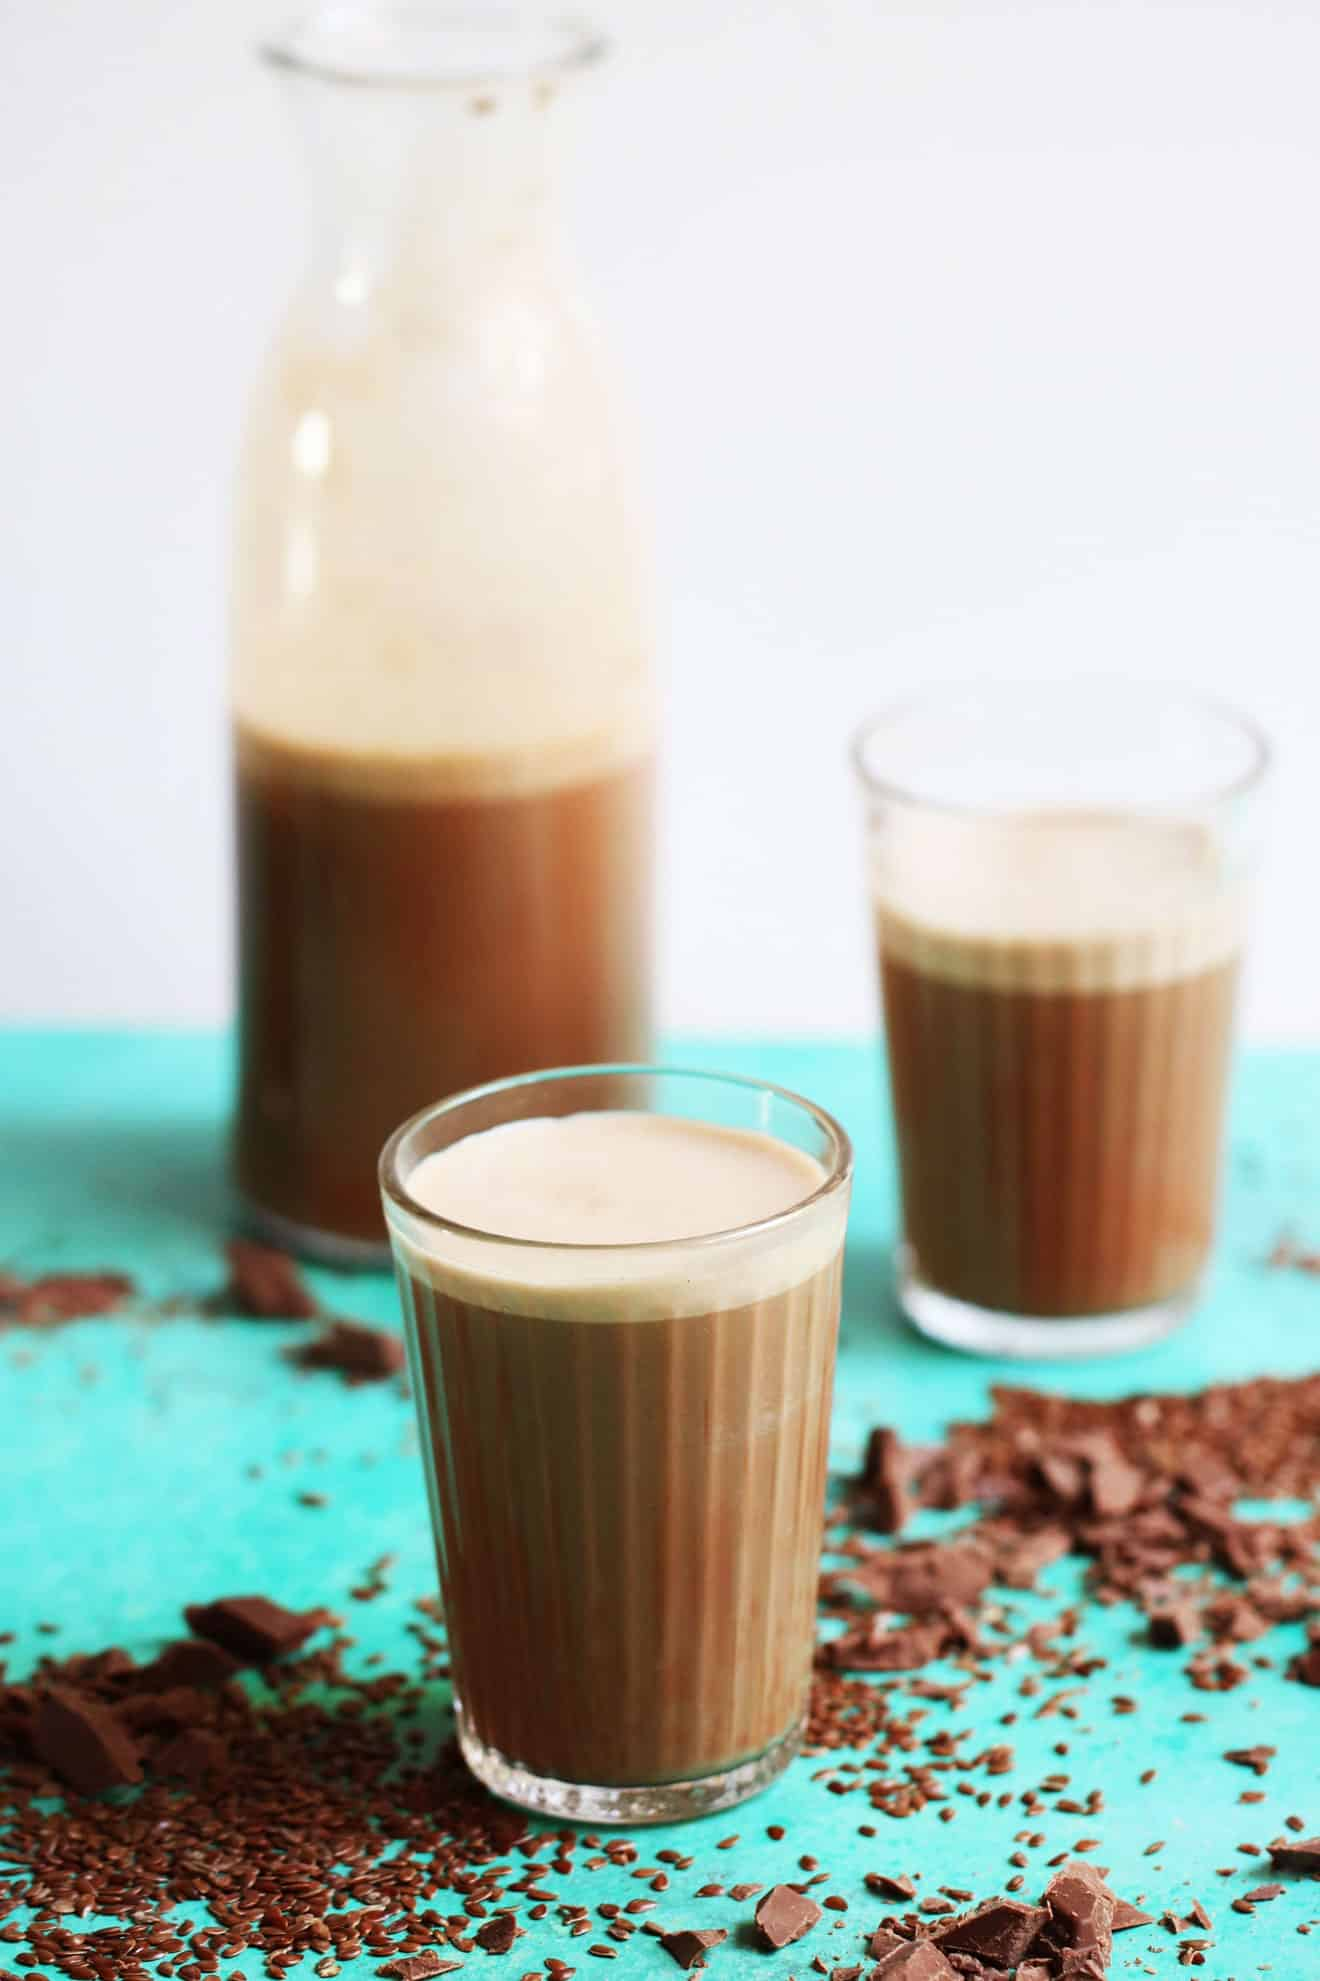 Homemade Chocolate Flax Milk